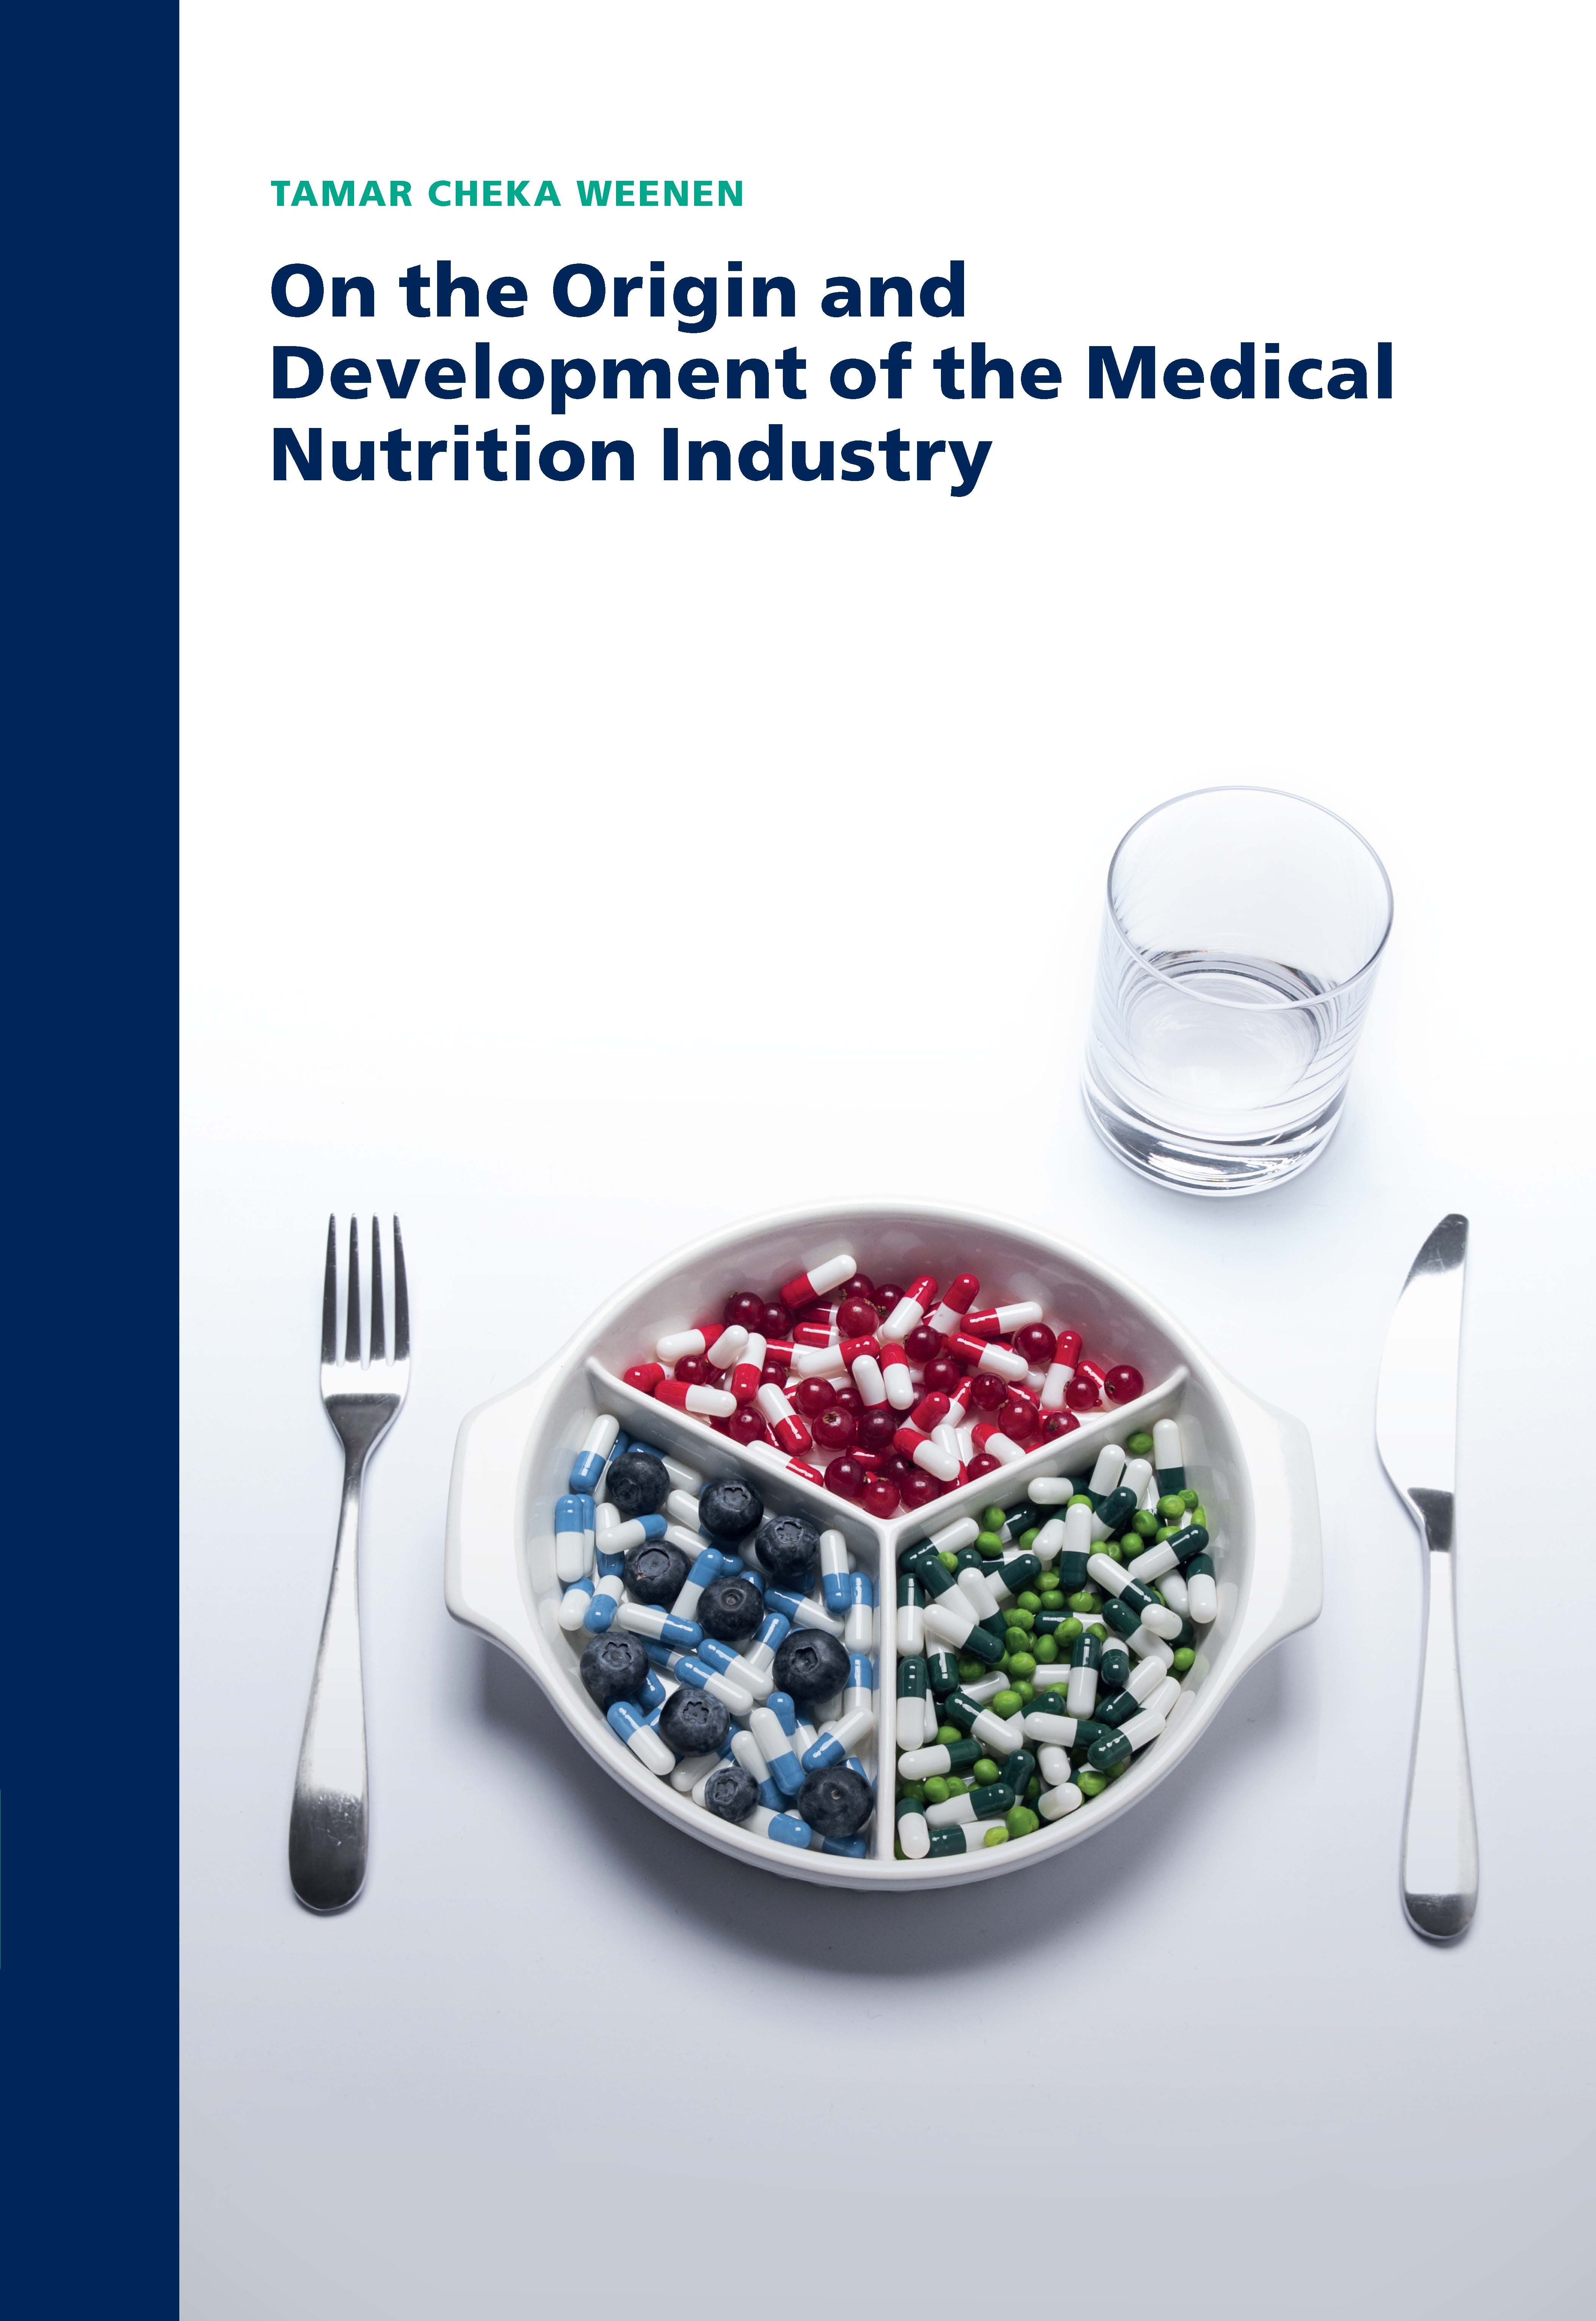 On the origin and development of the medical nutrition industry